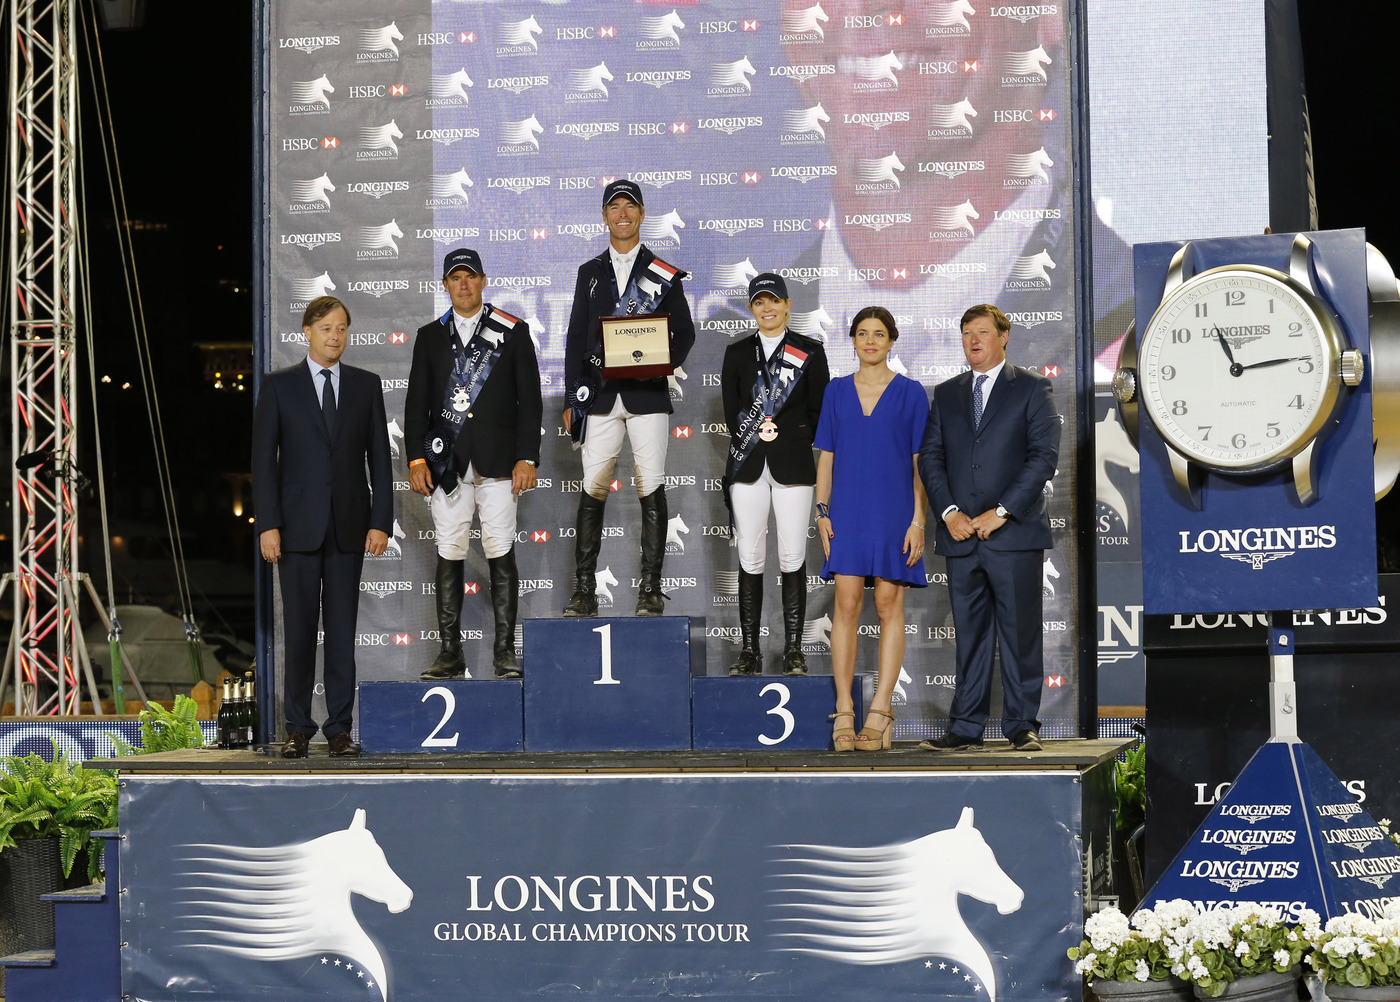 Longines Show Jumping Event: Longines Global Champions Tour in Monaco 5